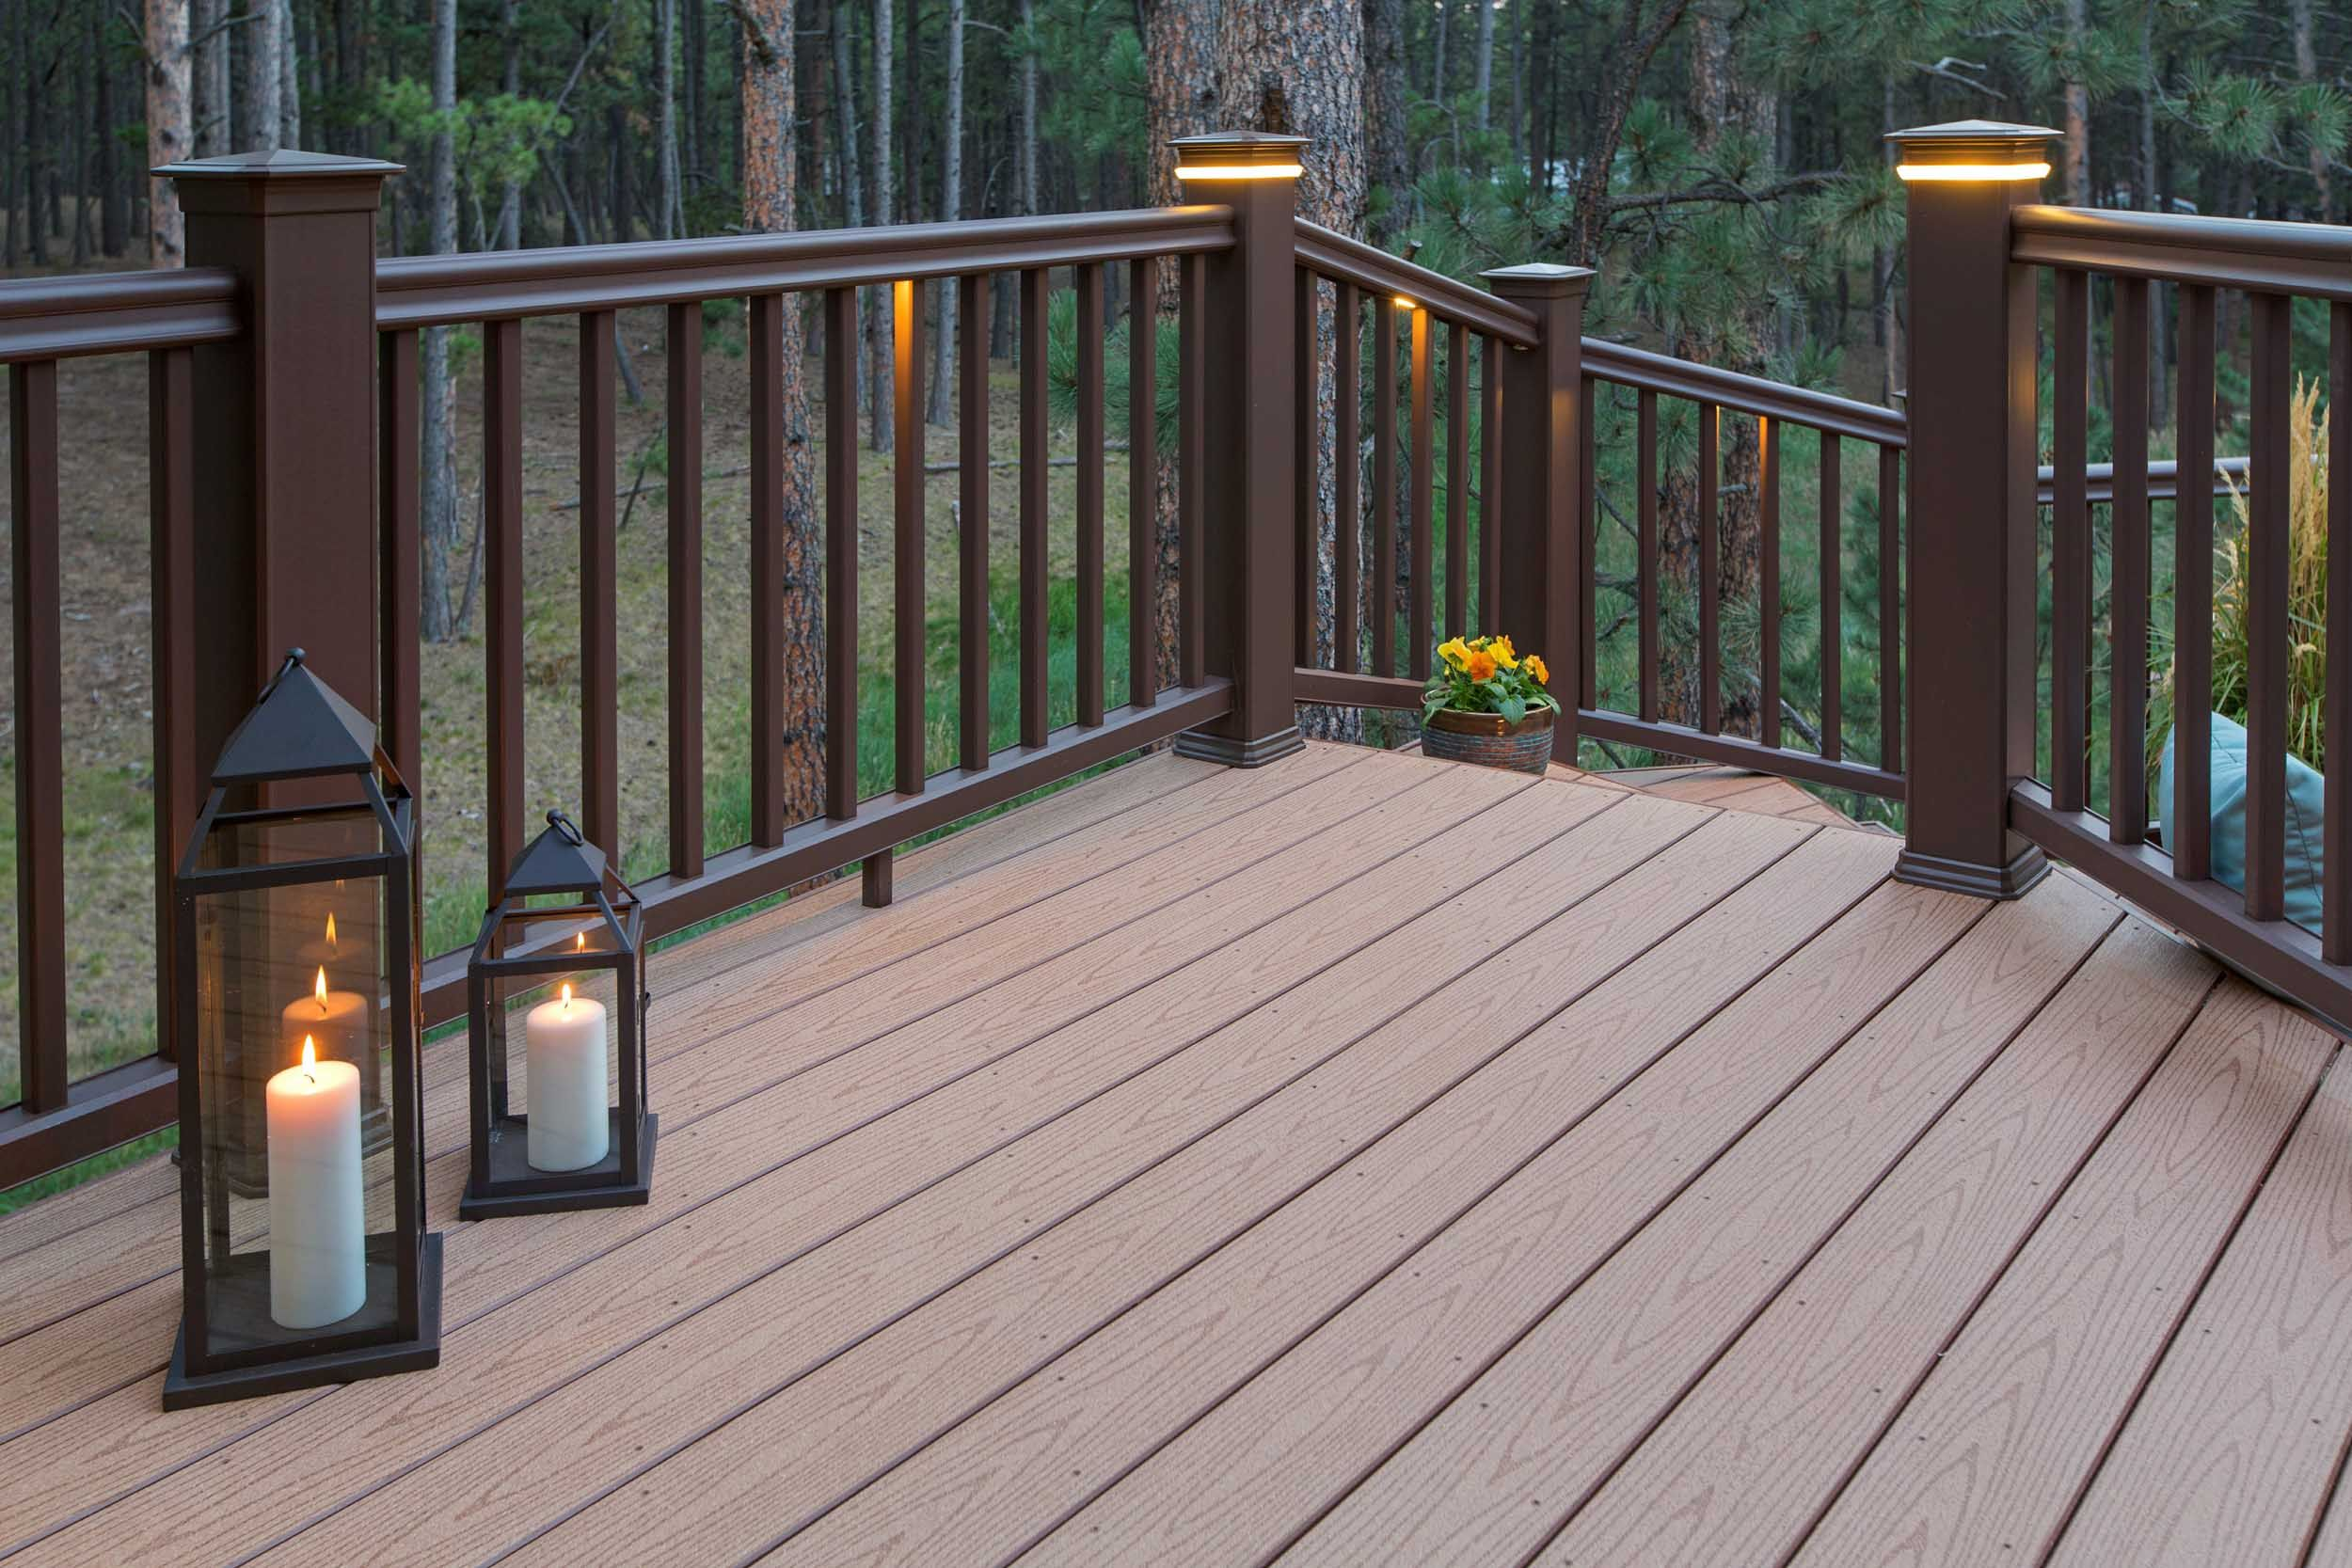 Stunning Timbertech Reliaboard Cedar Decking With Radiancerail In Traditional Walnut